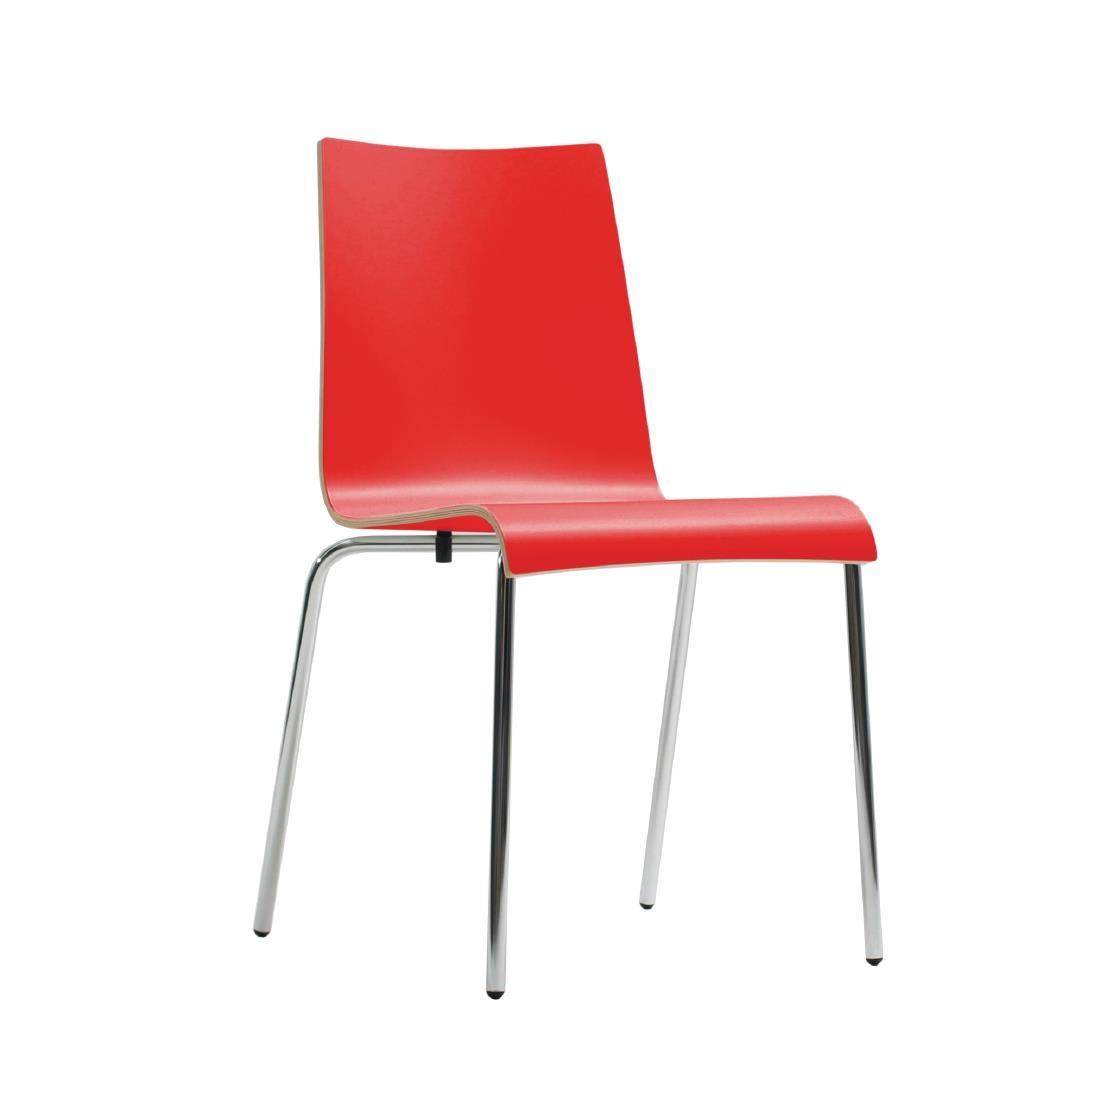 CP755 - Bolero Plyform Stacking Side Chairs Red - Case of 4 - CP755